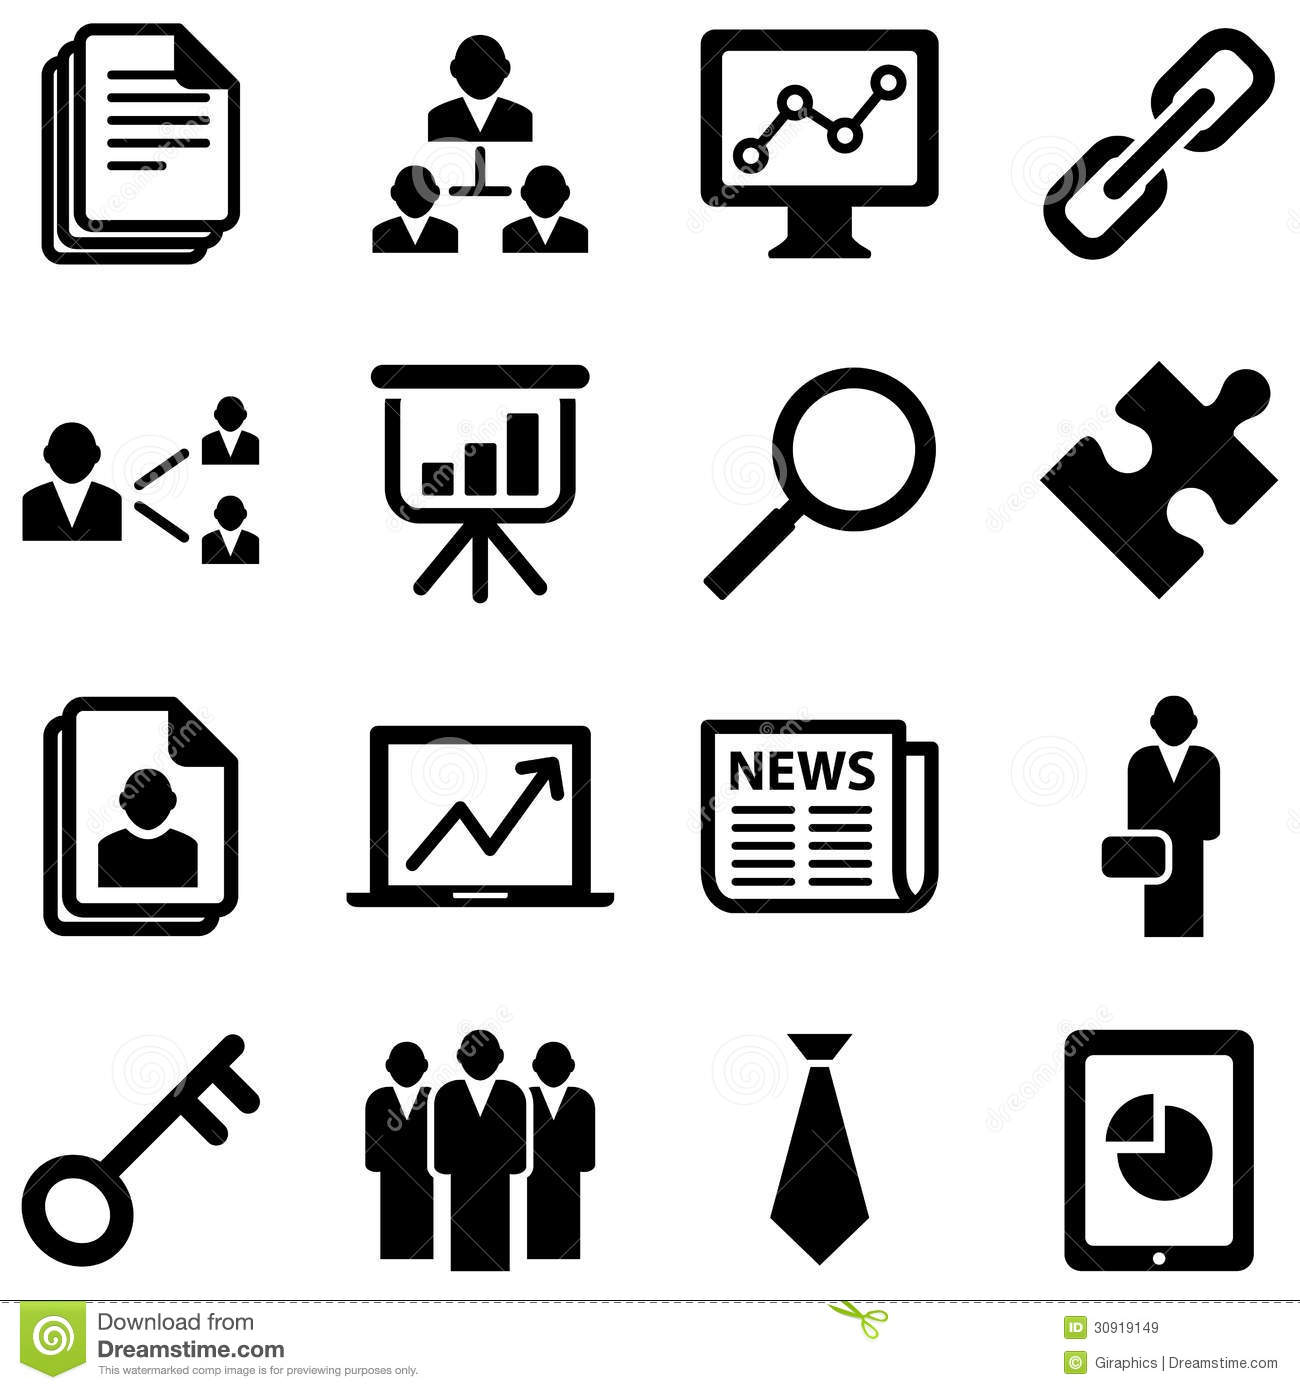 Business Icons Royalty Free Stock Images - Image: 30919149